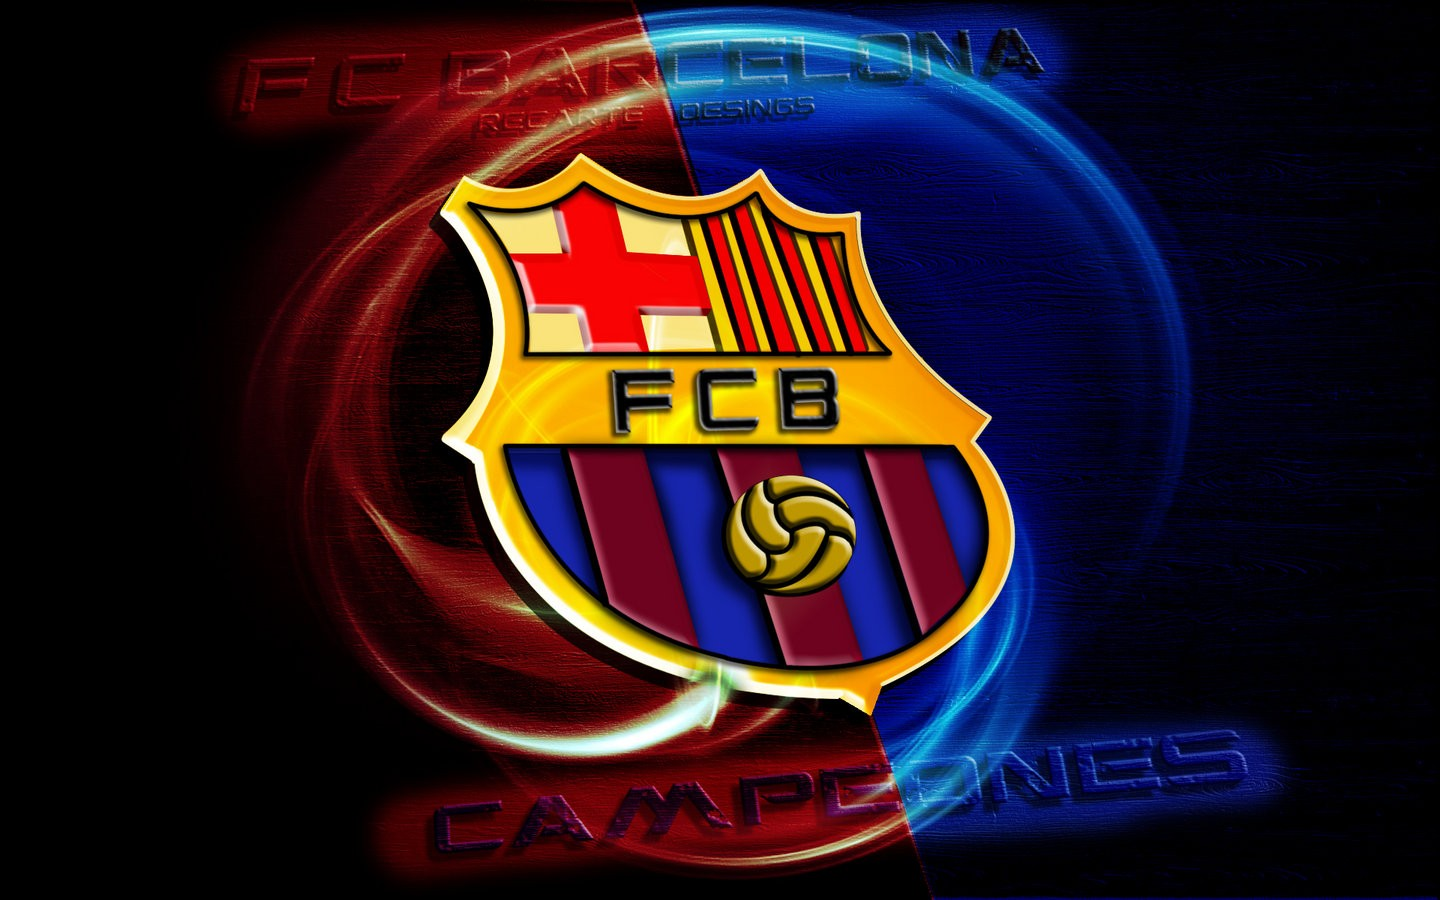 Barcelona Fc Wallpapers Hd Posted By Sarah Simpson